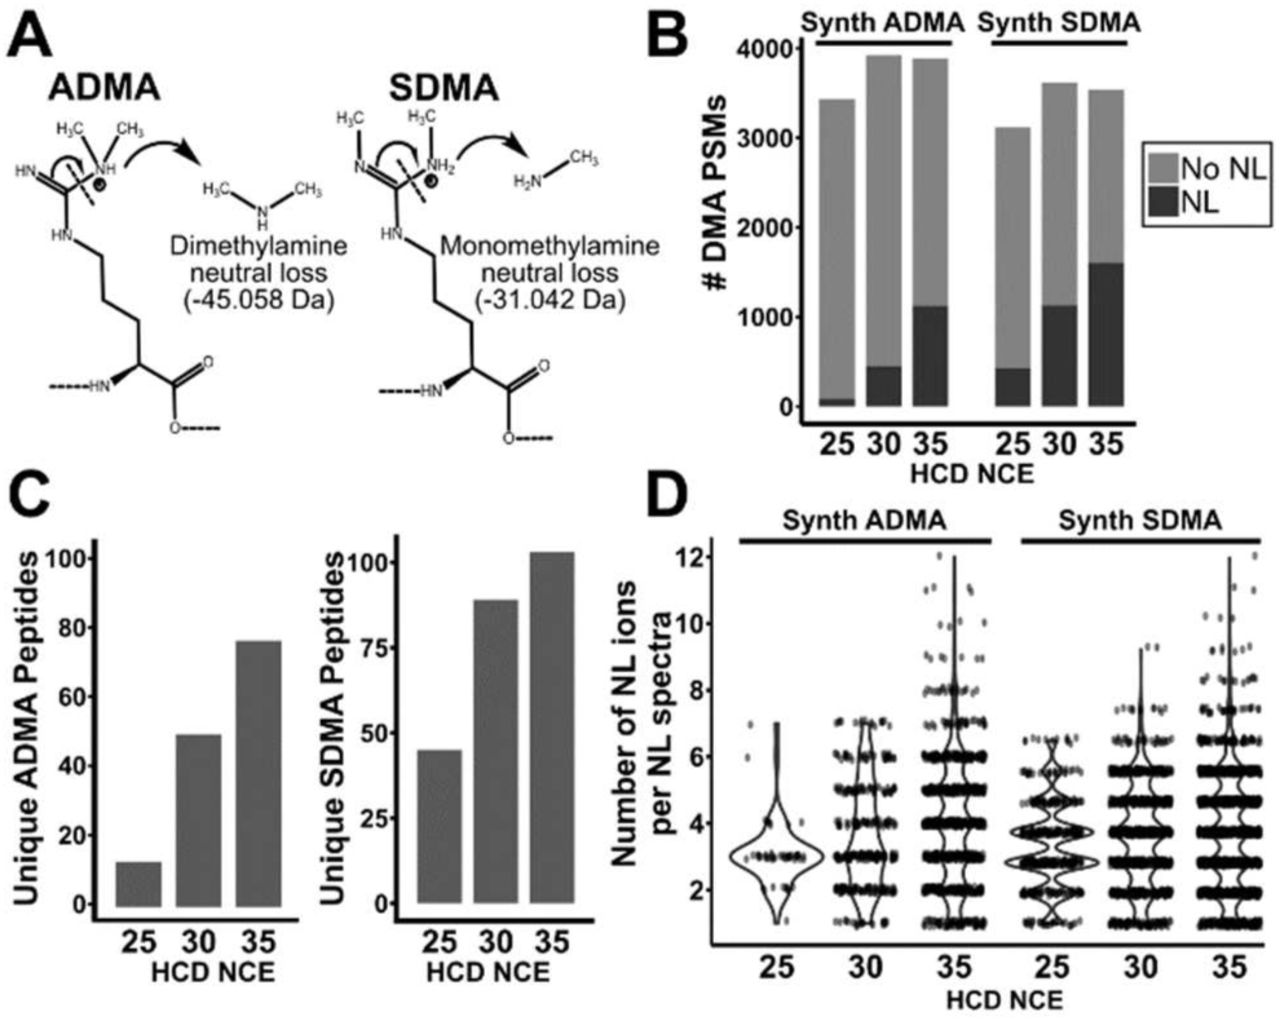 Higher NCE improves generation of NL ions in synthetic ADMA and SDMA peptides. A) Mechanism of neutral loss of dimethylamine and monomethylamine from ADMA and SDMA, respectively. B) Total number of DMA PSMs from a dataset of synthetic ADMA and SDMA peptides. The proportion of PSMs displaying either an ADMA or SDMA neutral loss in the HCD cell of an Orbitrap Fusion Lumos are shown for each NCE. C) Total number of unique peptides with assignable ADMA or SDMA neutral loss for each NCE. D) Violin plot of the number of NL ions present in DMA PSMs for each NCE. Each point represents a PSM with a corresponding number of NL ions observed in that spectra.